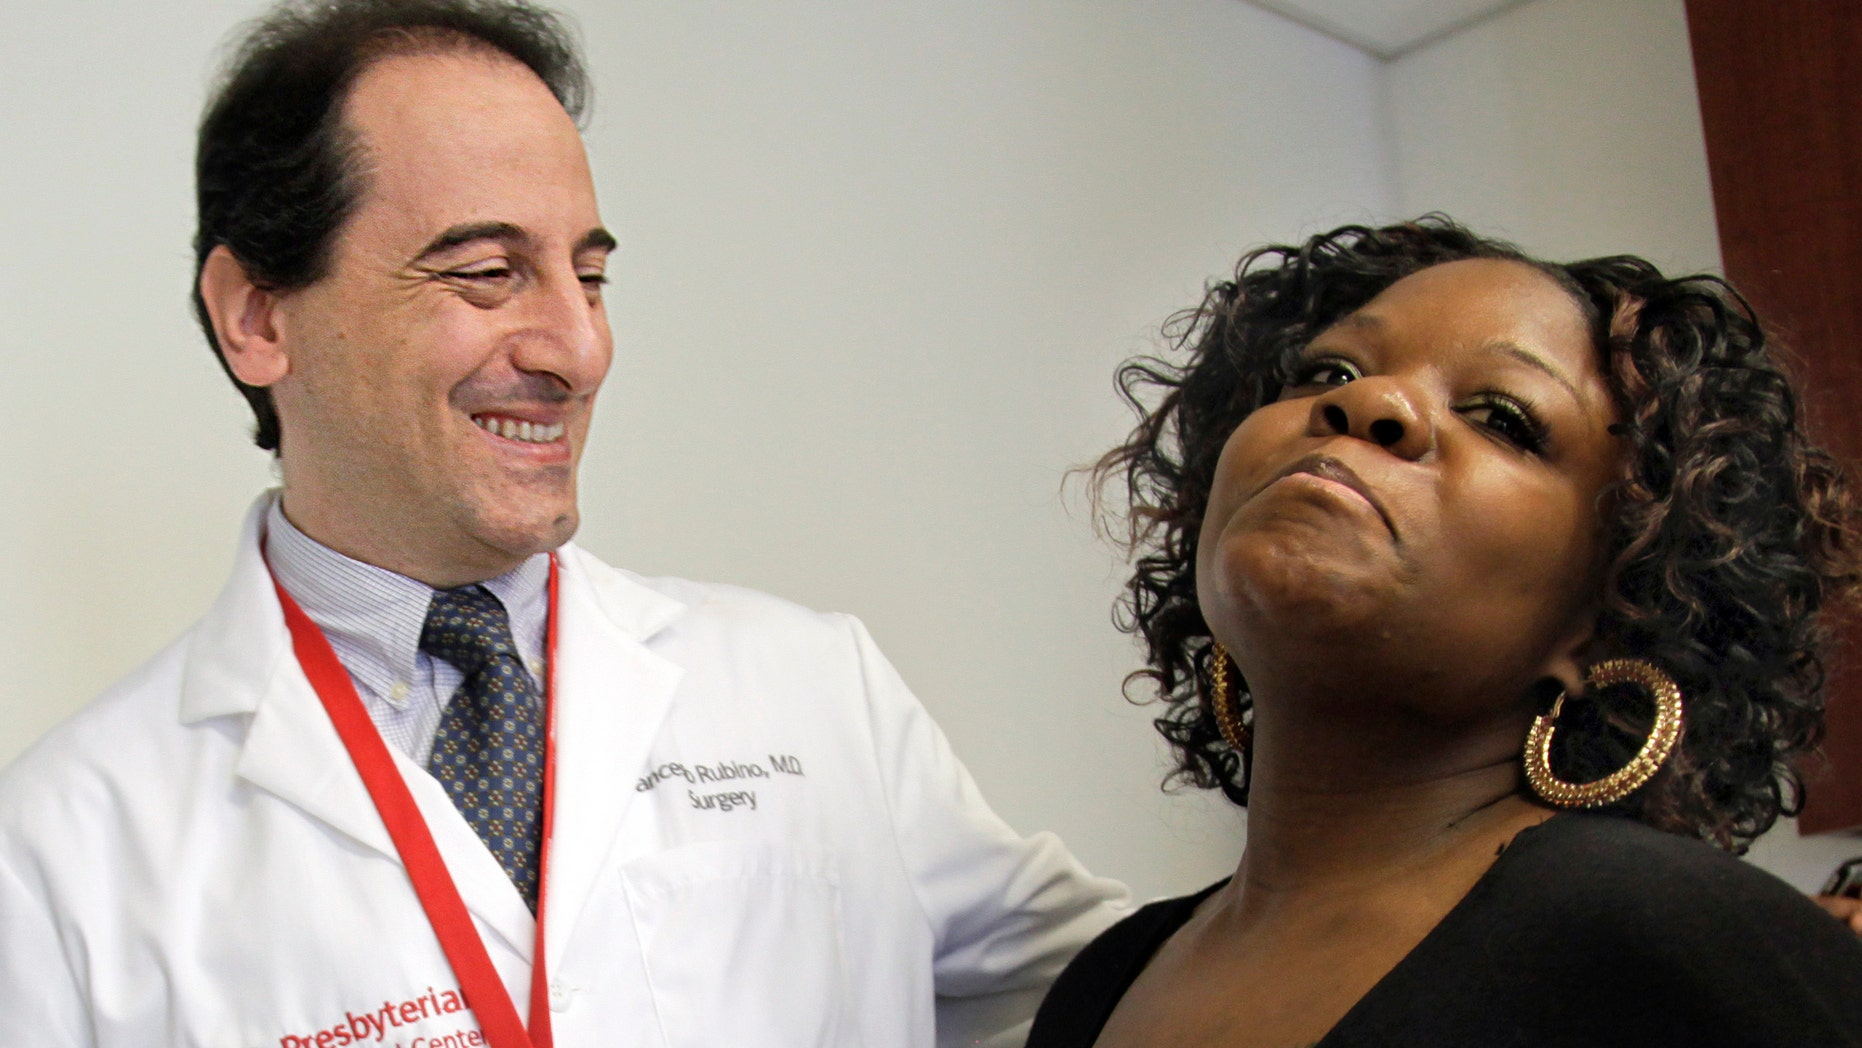 In this March 23, 2012 photo, Dr. Francesco Rubino, a surgeon at Weill Cornell Medical Center, joins his patient Tamikka McCray, 39, for an interview in New York. McCray no longer needed to take diabetes medication and insulin after her weigh-loss surgery. Research by Dr. Francesco Rubino, McCray's surgeon at Weill Cornell, and other doctors gives clear proof that weight-loss surgery can reverse and possibly cure diabetes. (AP Photo/Bebeto Matthews)